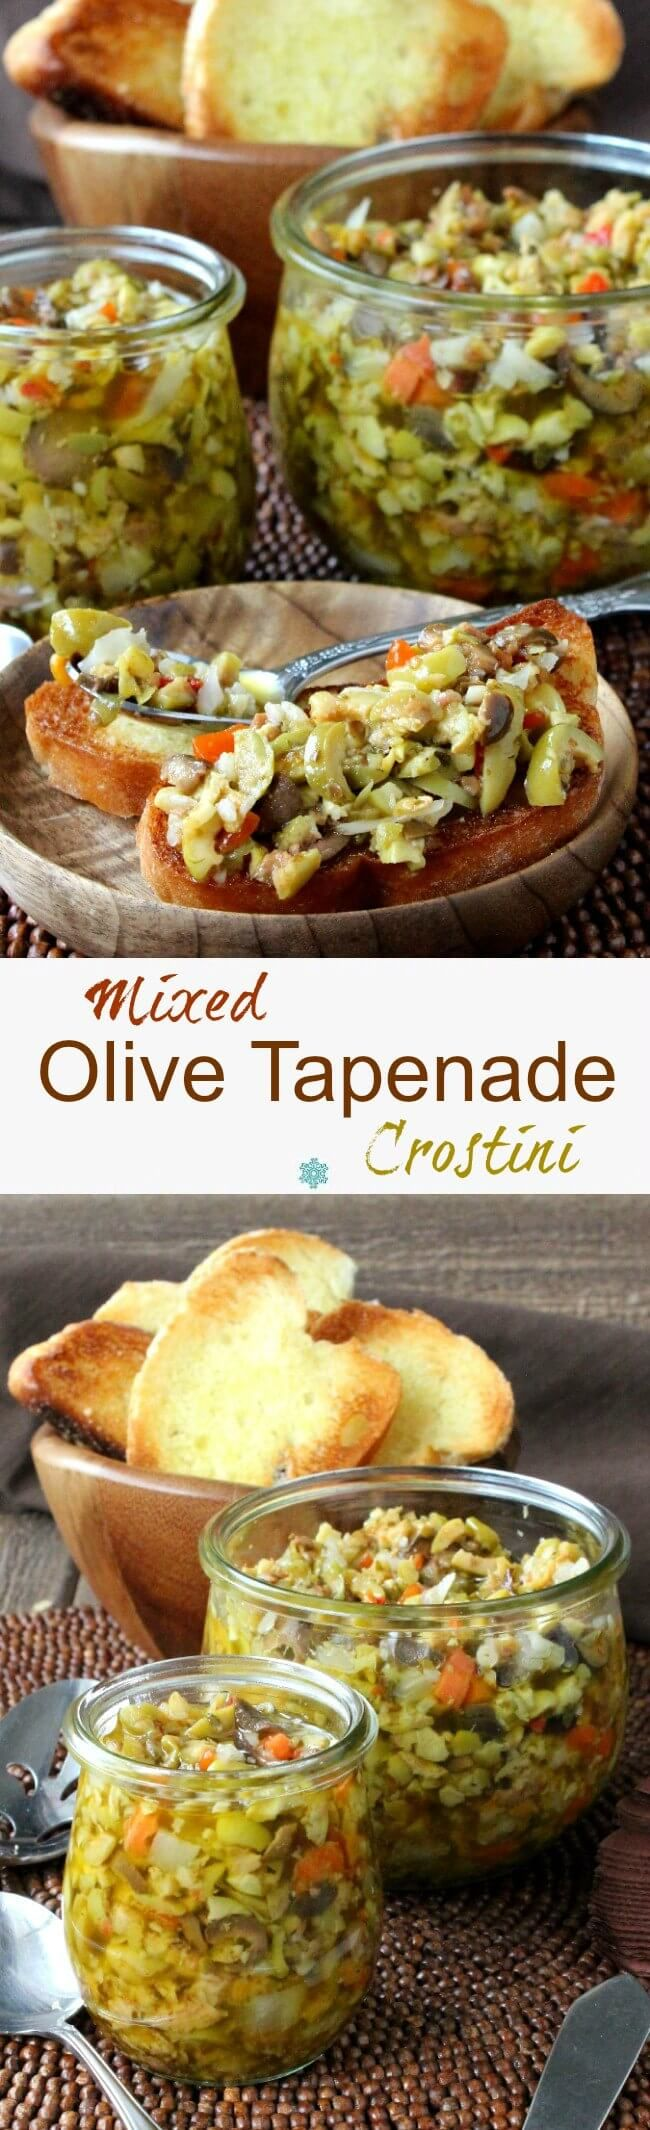 Mixed Olive Tapenade Crostini is a classic recipe that can be prepared quickly for a special appetizer. Spruced up for just a bit more oomph! ~ http://veganinthefreezer.com